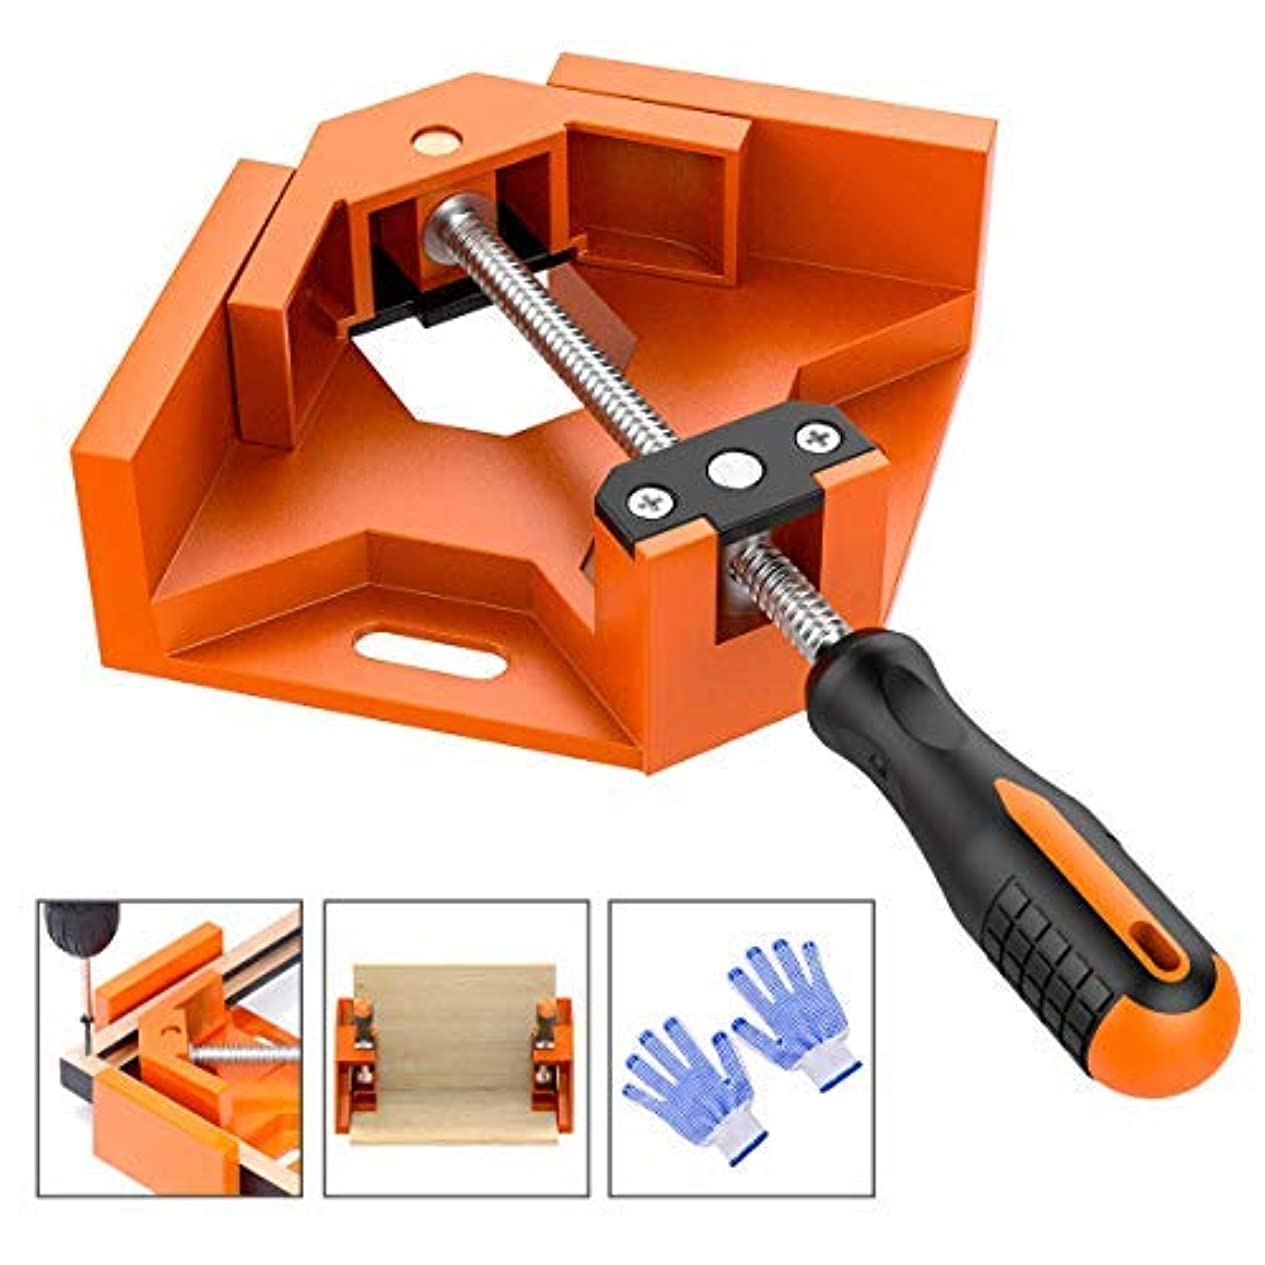 学期お別れ飛行場Frylr 90° Right Angle Clamps/Adjustable Corner Clamp Holder Tools with Adjustable Swing Jaw for Carpenter, Welding, Wood-working, Engineering, Photo Framing [並行輸入品]